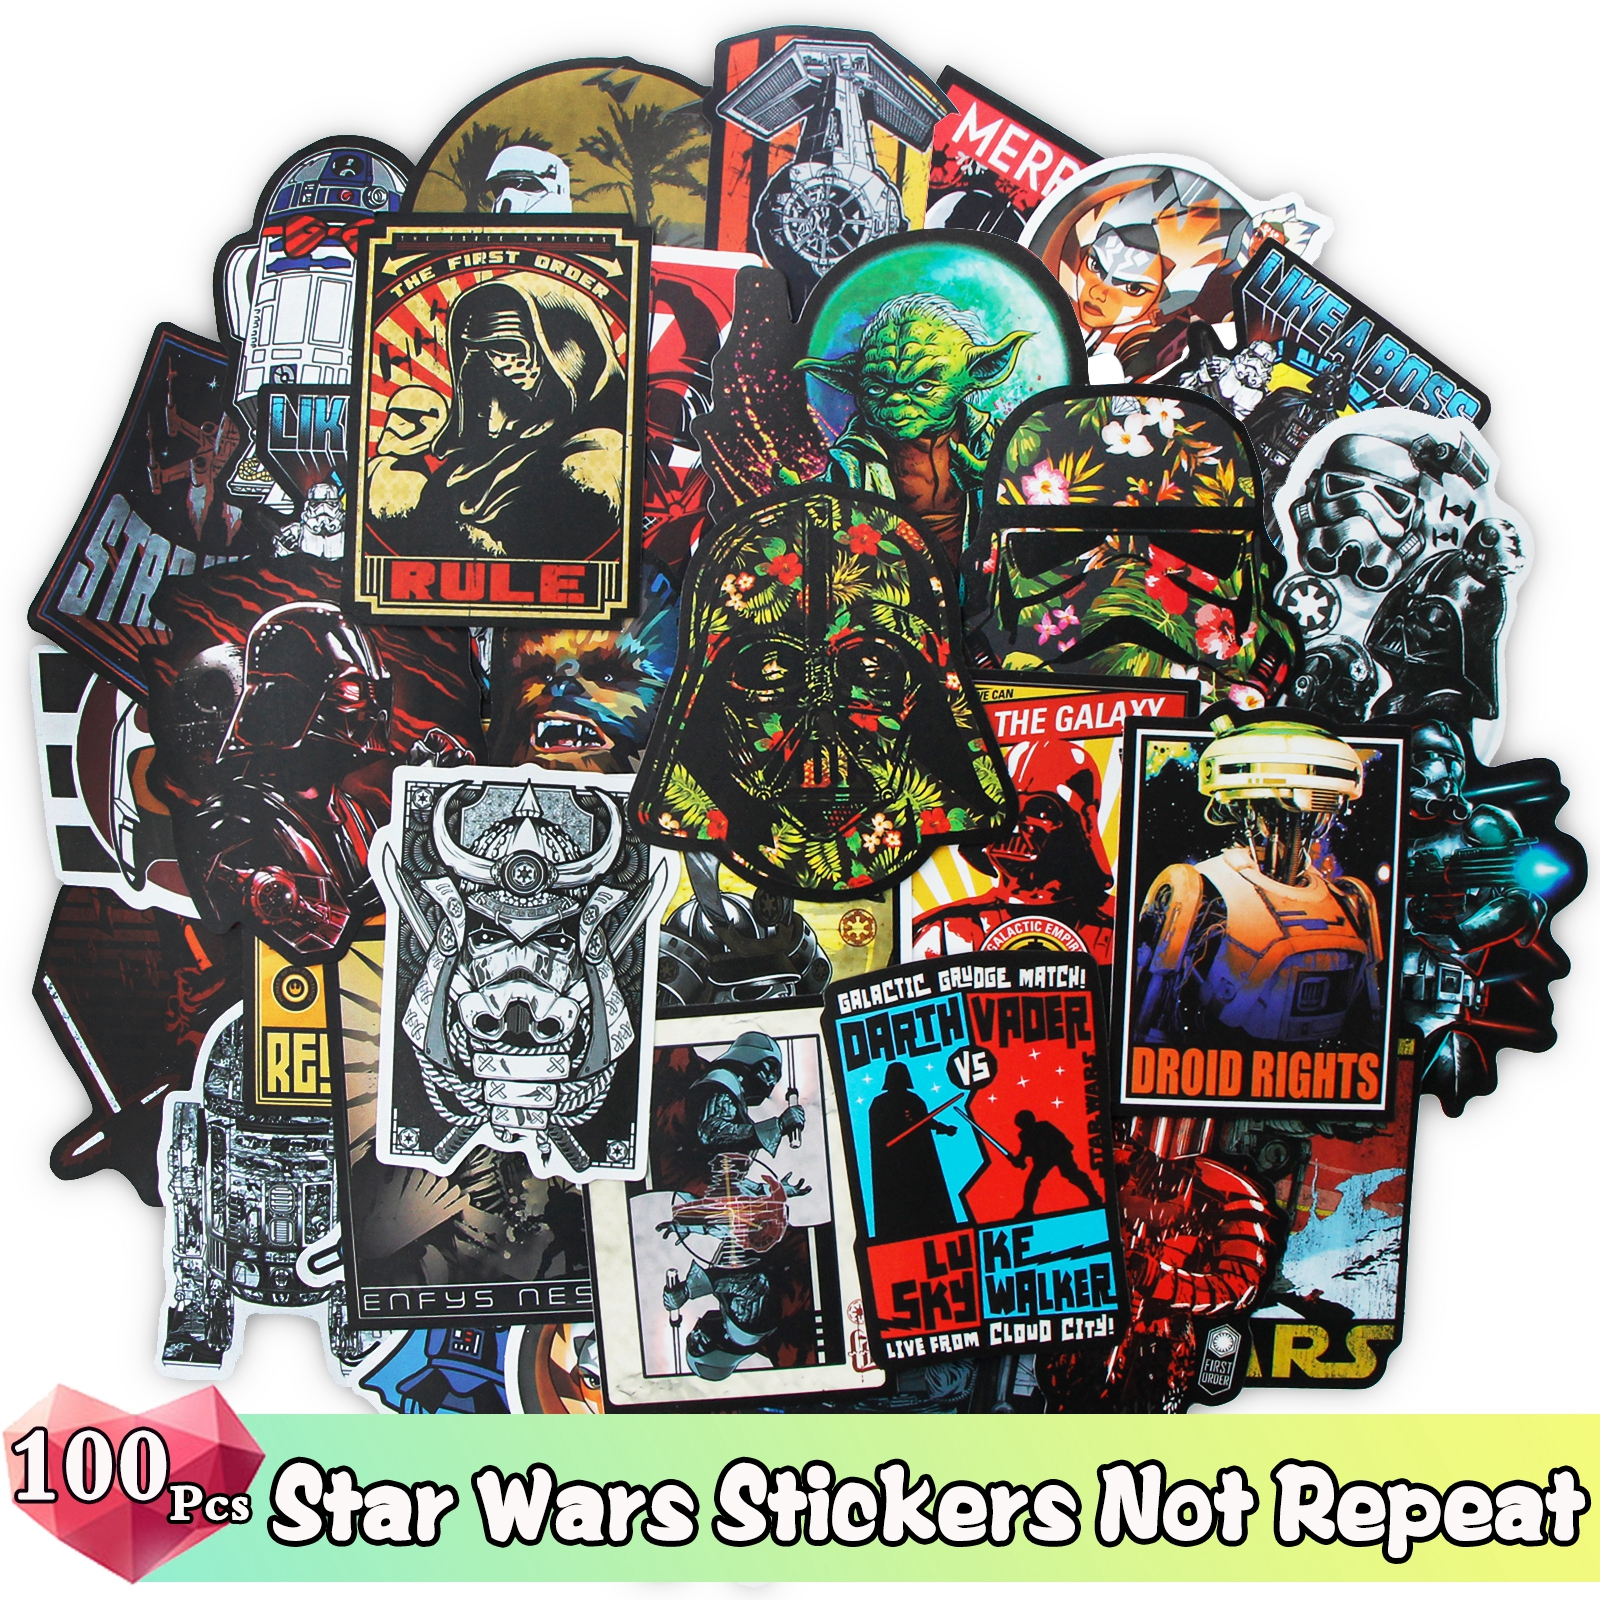 100/50 /25 Pcs Mixed Style Stickers For Star Wars Cartoon Funny Stickers For Skateboard Luggage Bicycle Laptop Guitar Decals Toy